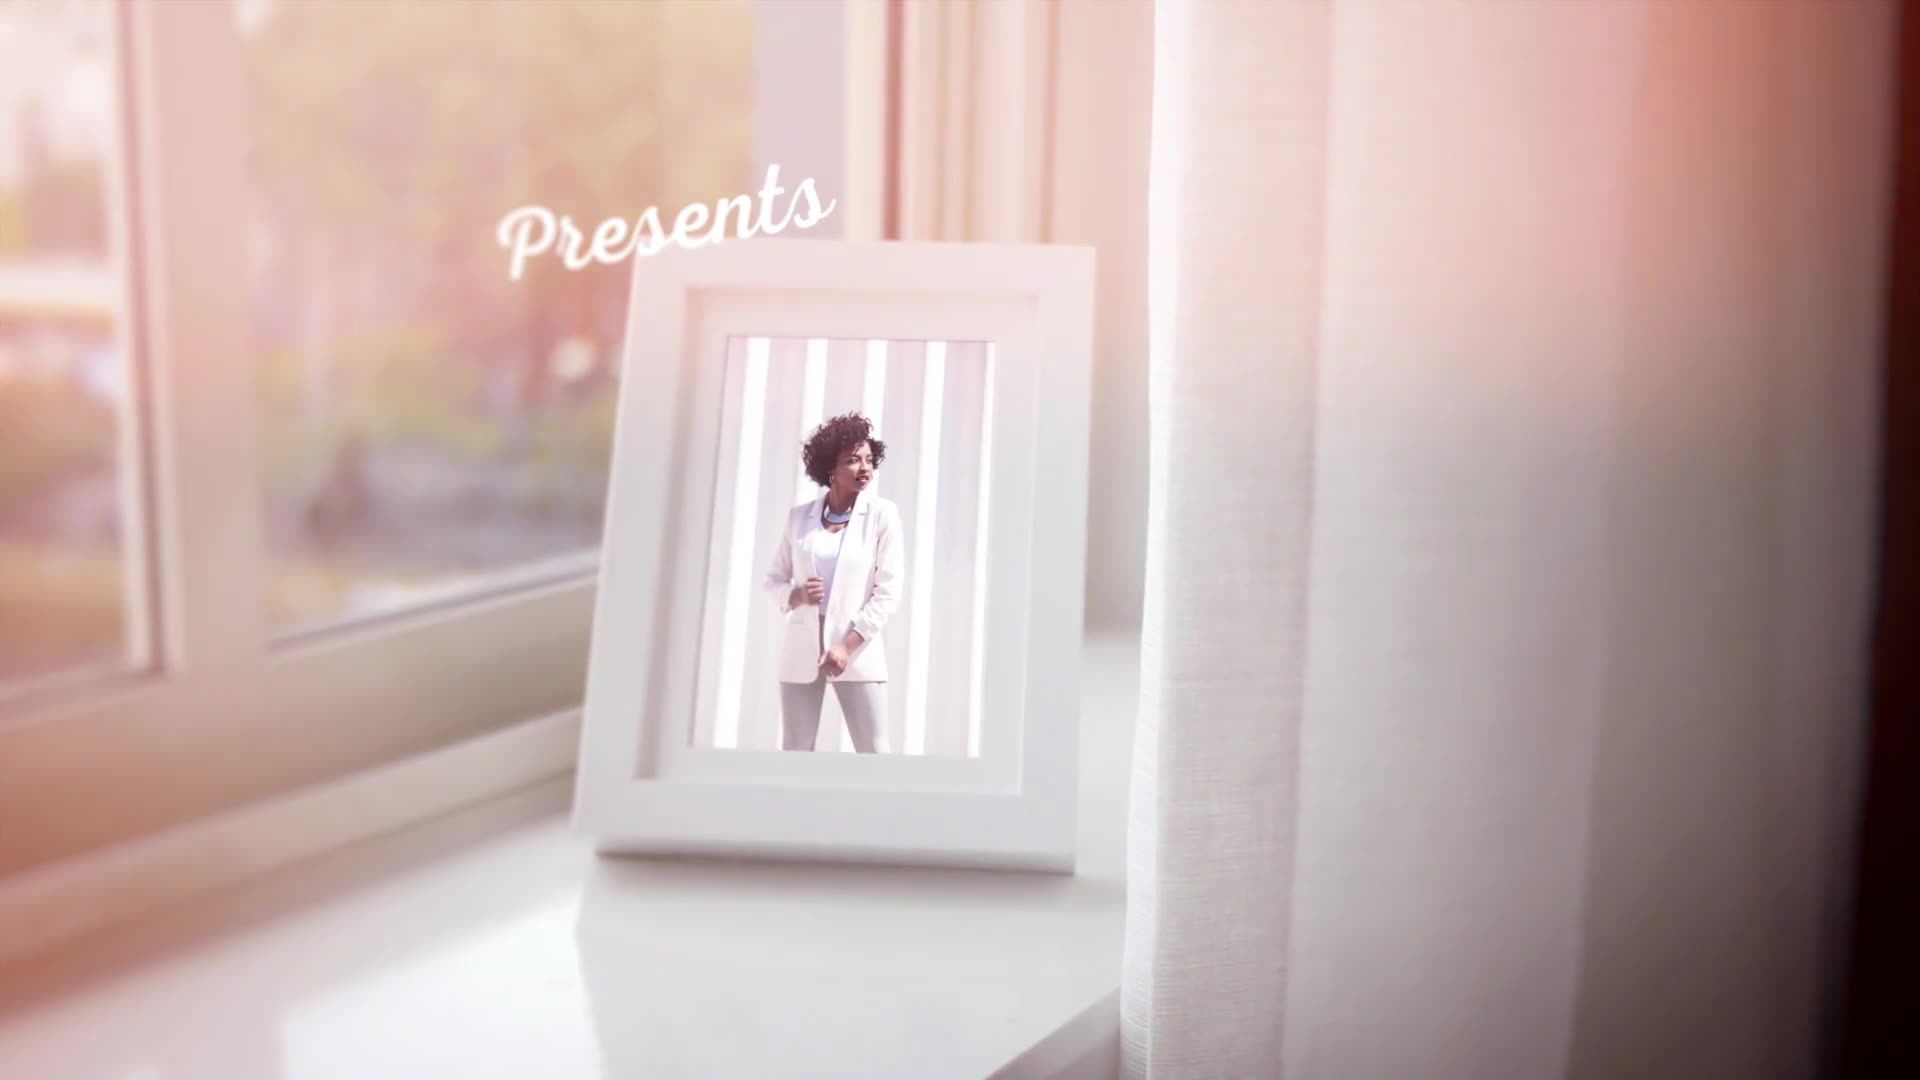 Realistic Frames | Photo Displays - Download Videohive 20974257